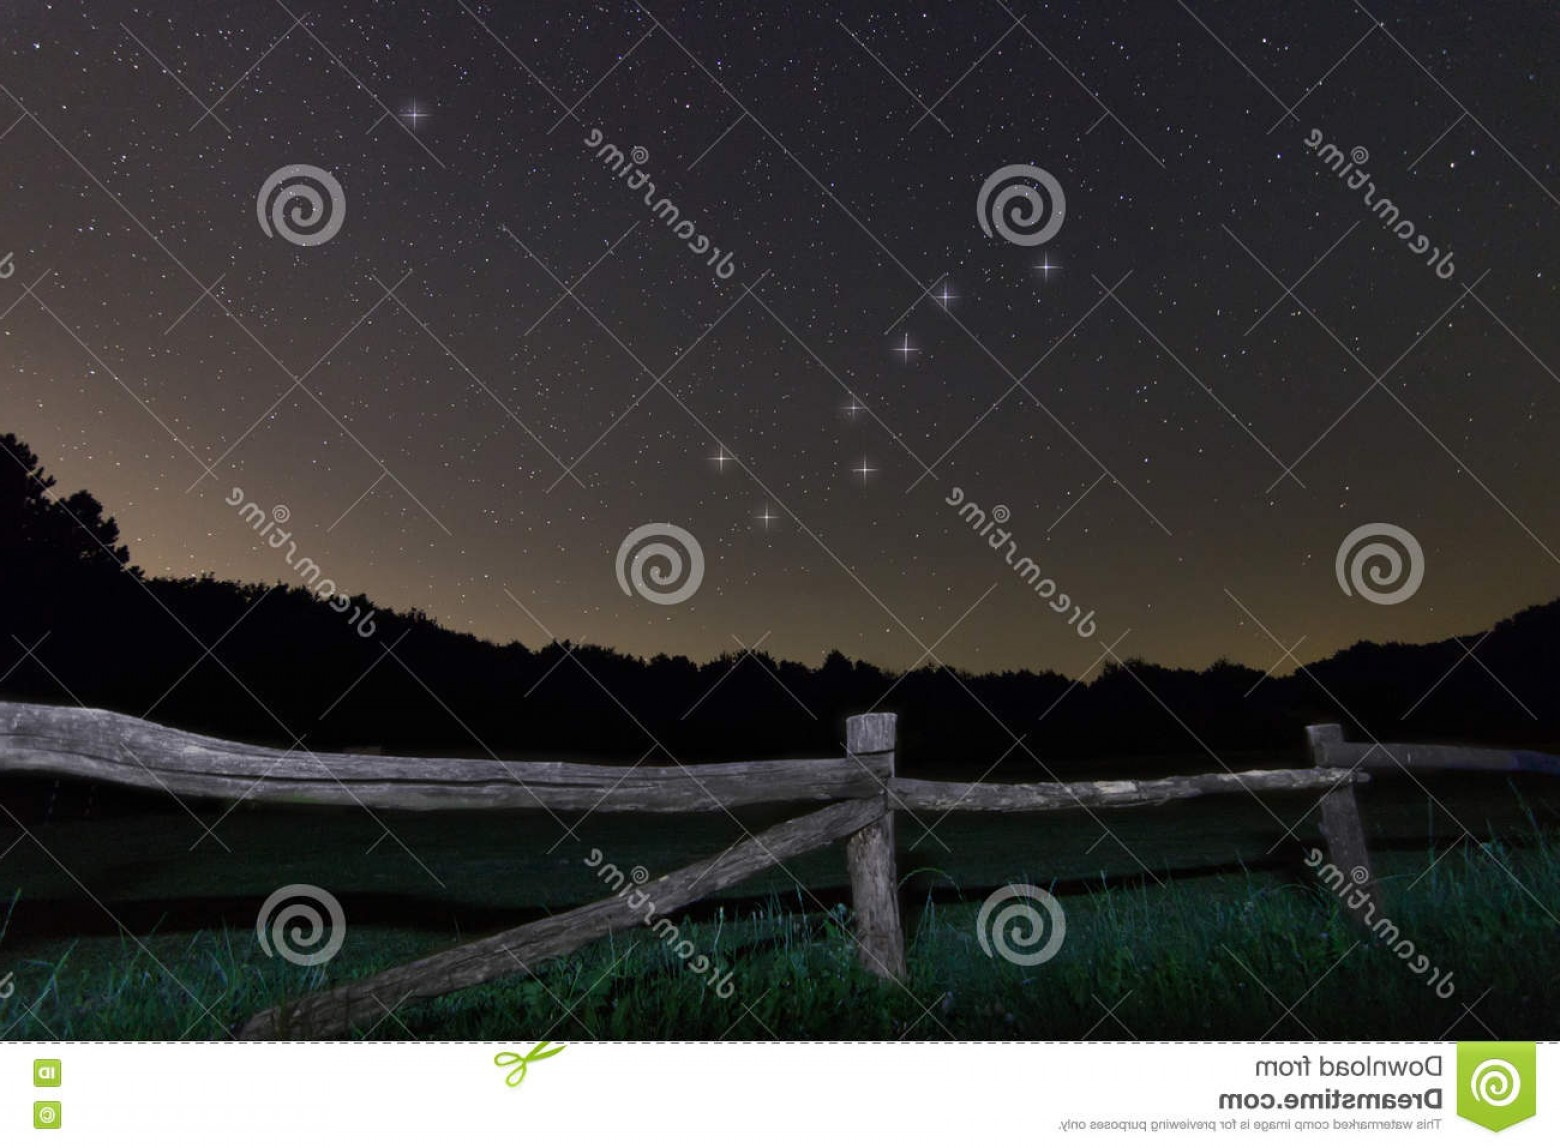 Polaris Star Logo Vector: Stock Photo Old Fence Starry Night Polaris Star Ursa Major Big Dipper Constellation Beautiful Night Sky Clear Concept Background Image